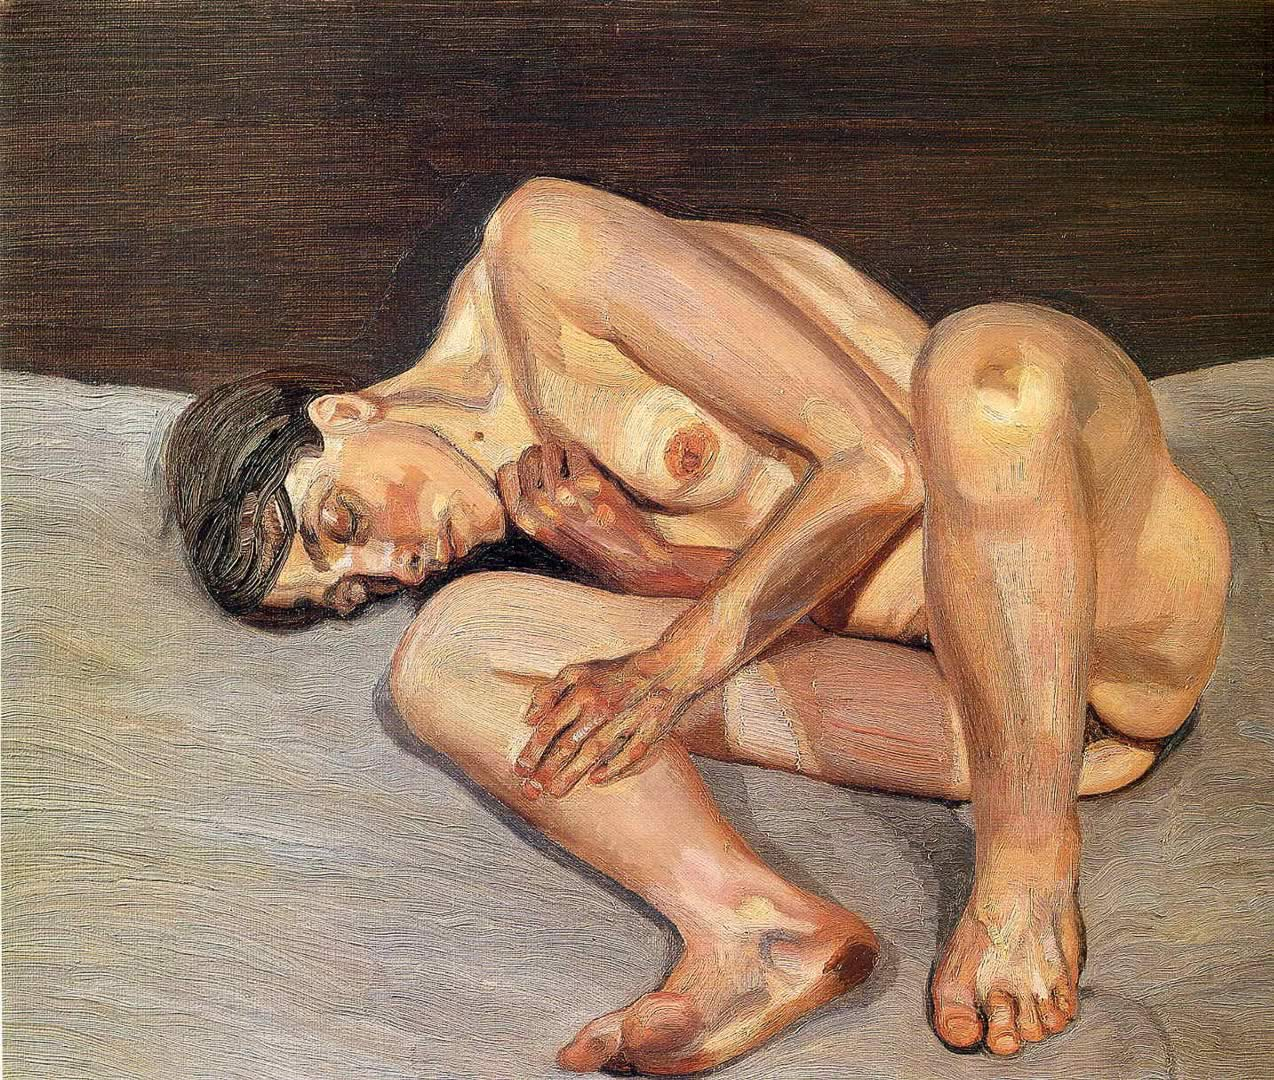 Lucian freud naked portrait opinion you